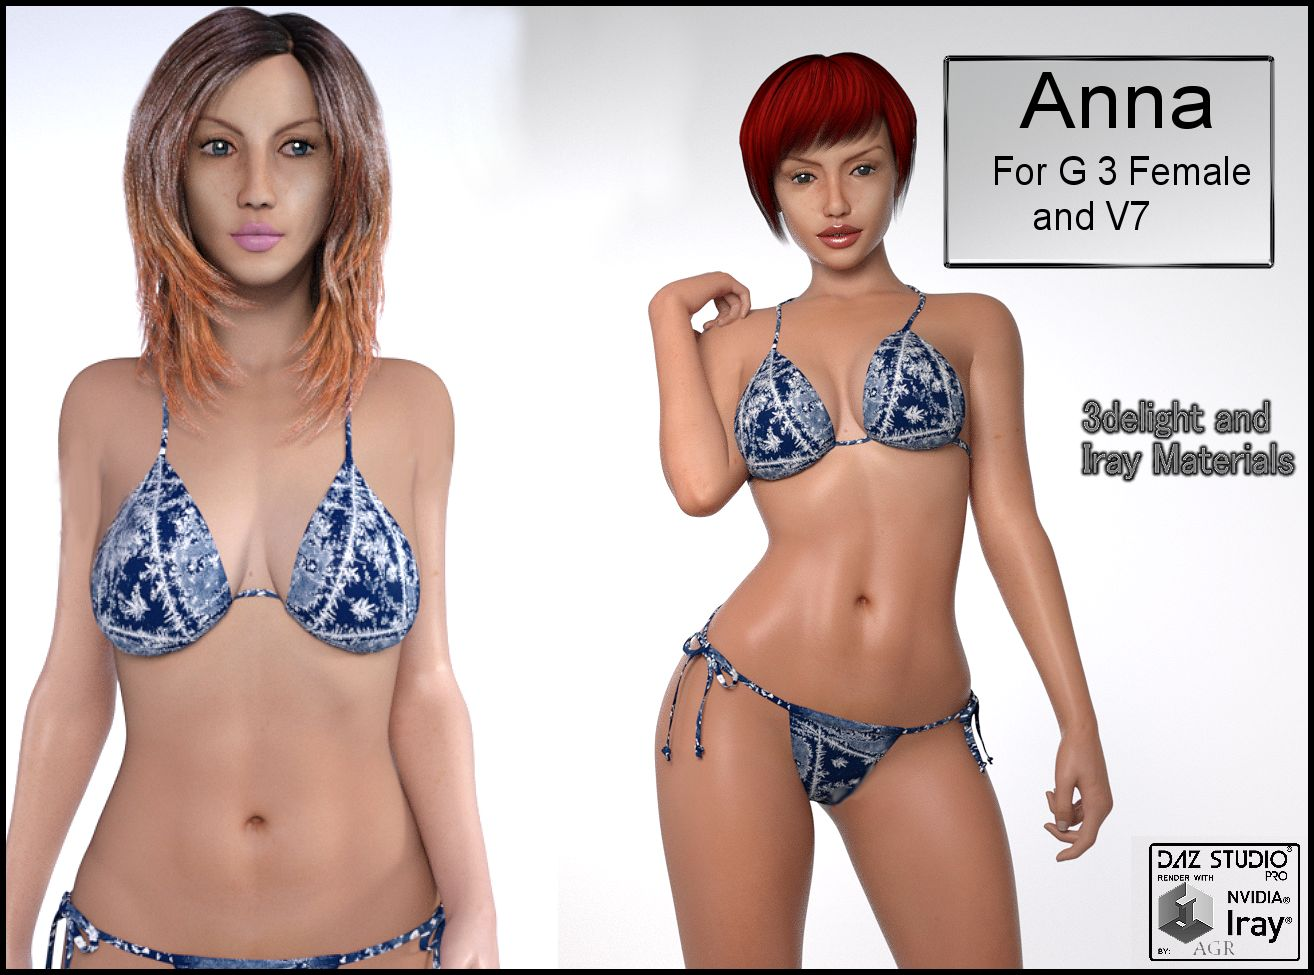 Anna for G3F and V7